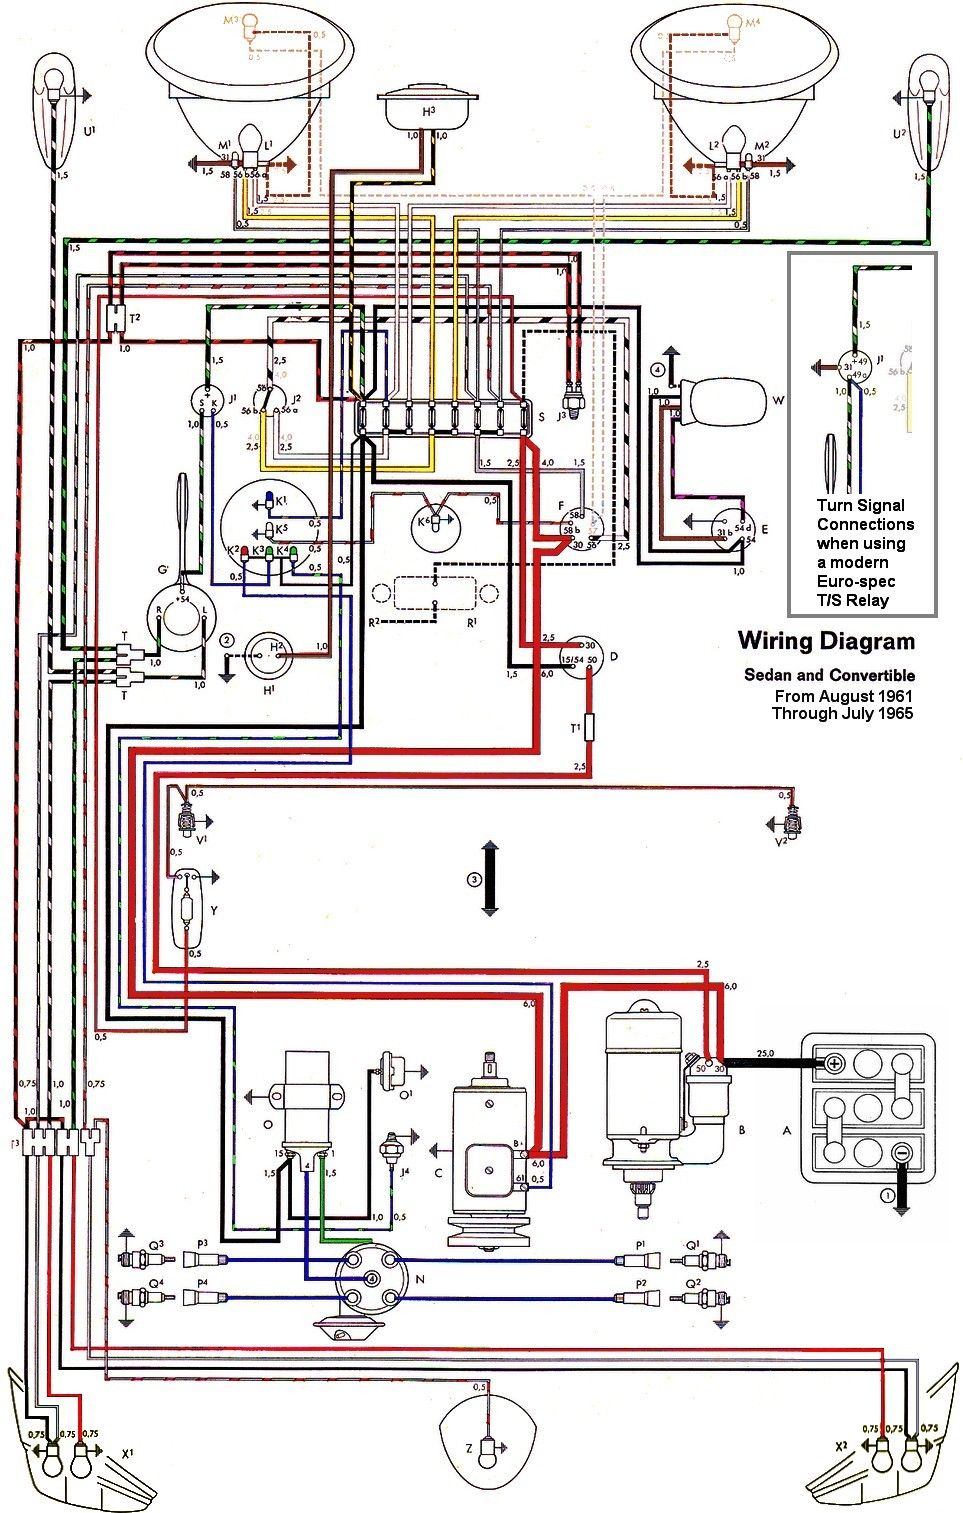 2235472c26e9b61112a110100d6ddea3 wiring diagram in color 1964 vw bug, beetle, convertible the vw beetle wiring harness routing at soozxer.org